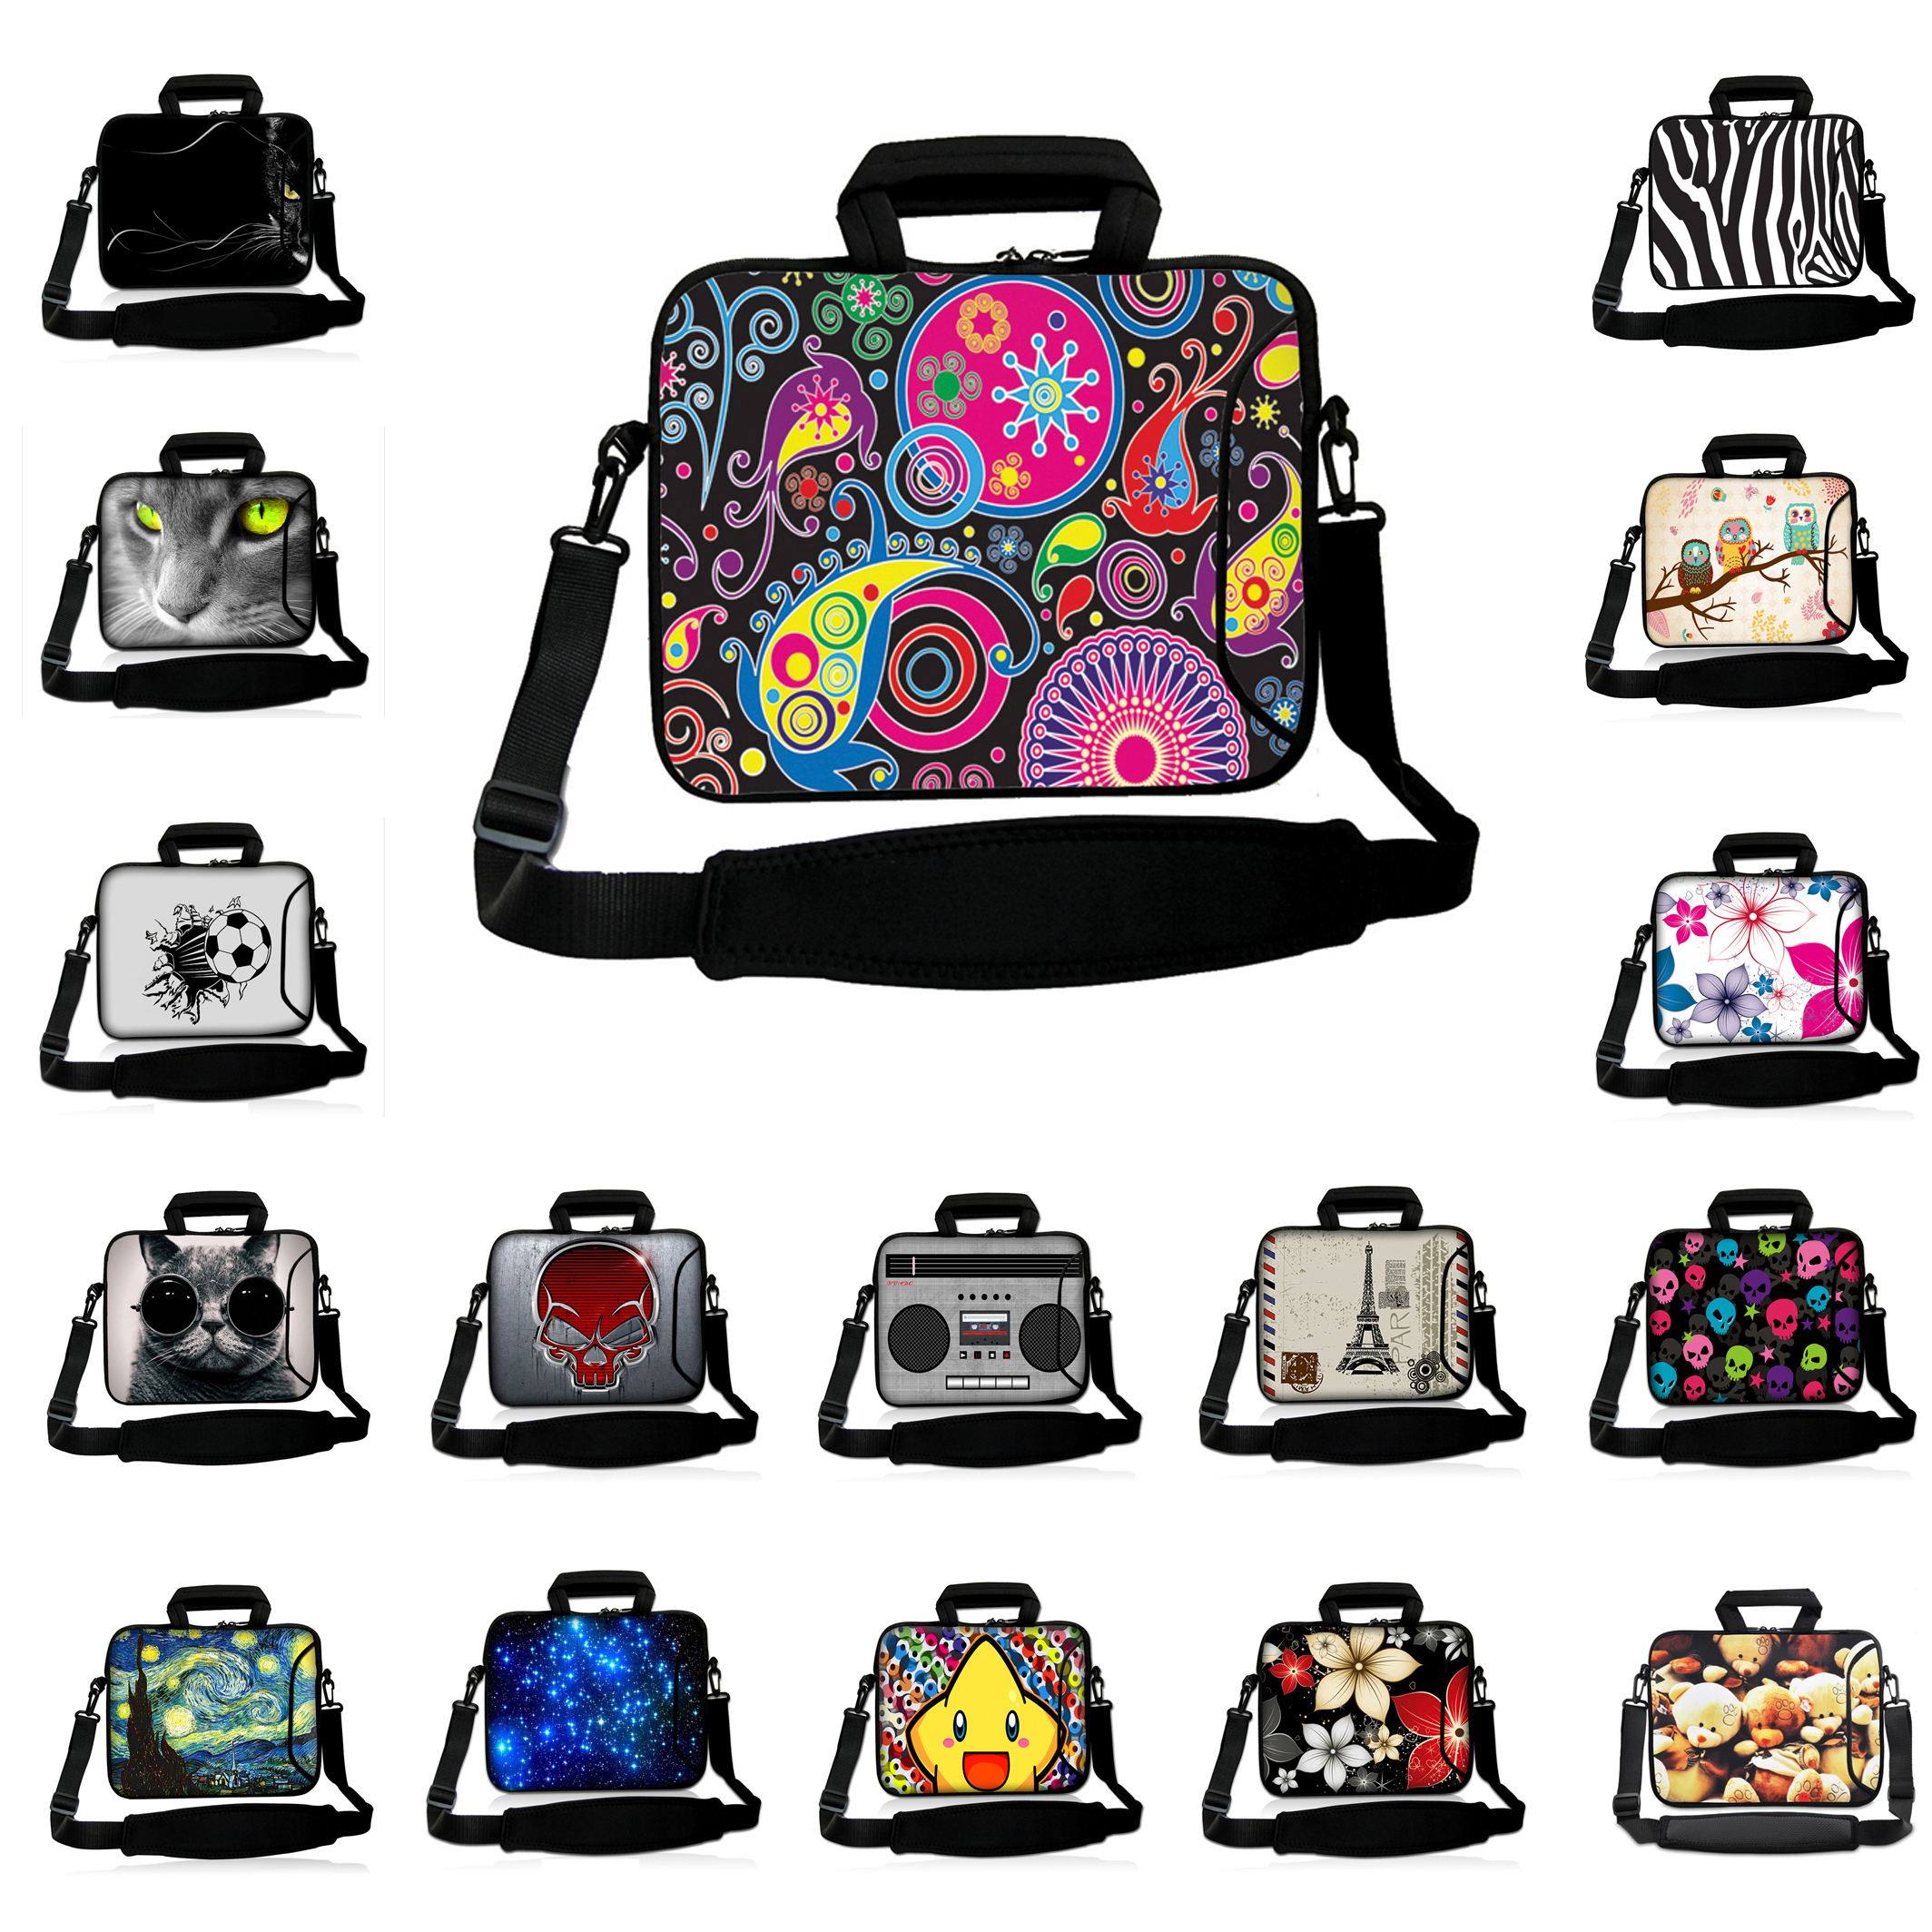 For Sony Lenovo Macbook Pro Notebook 15.3 15.4 15.6 inch Shoulder Strap Messenger Laptop bags15 inch Tablet Notebook Pouch Cases<br><br>Aliexpress